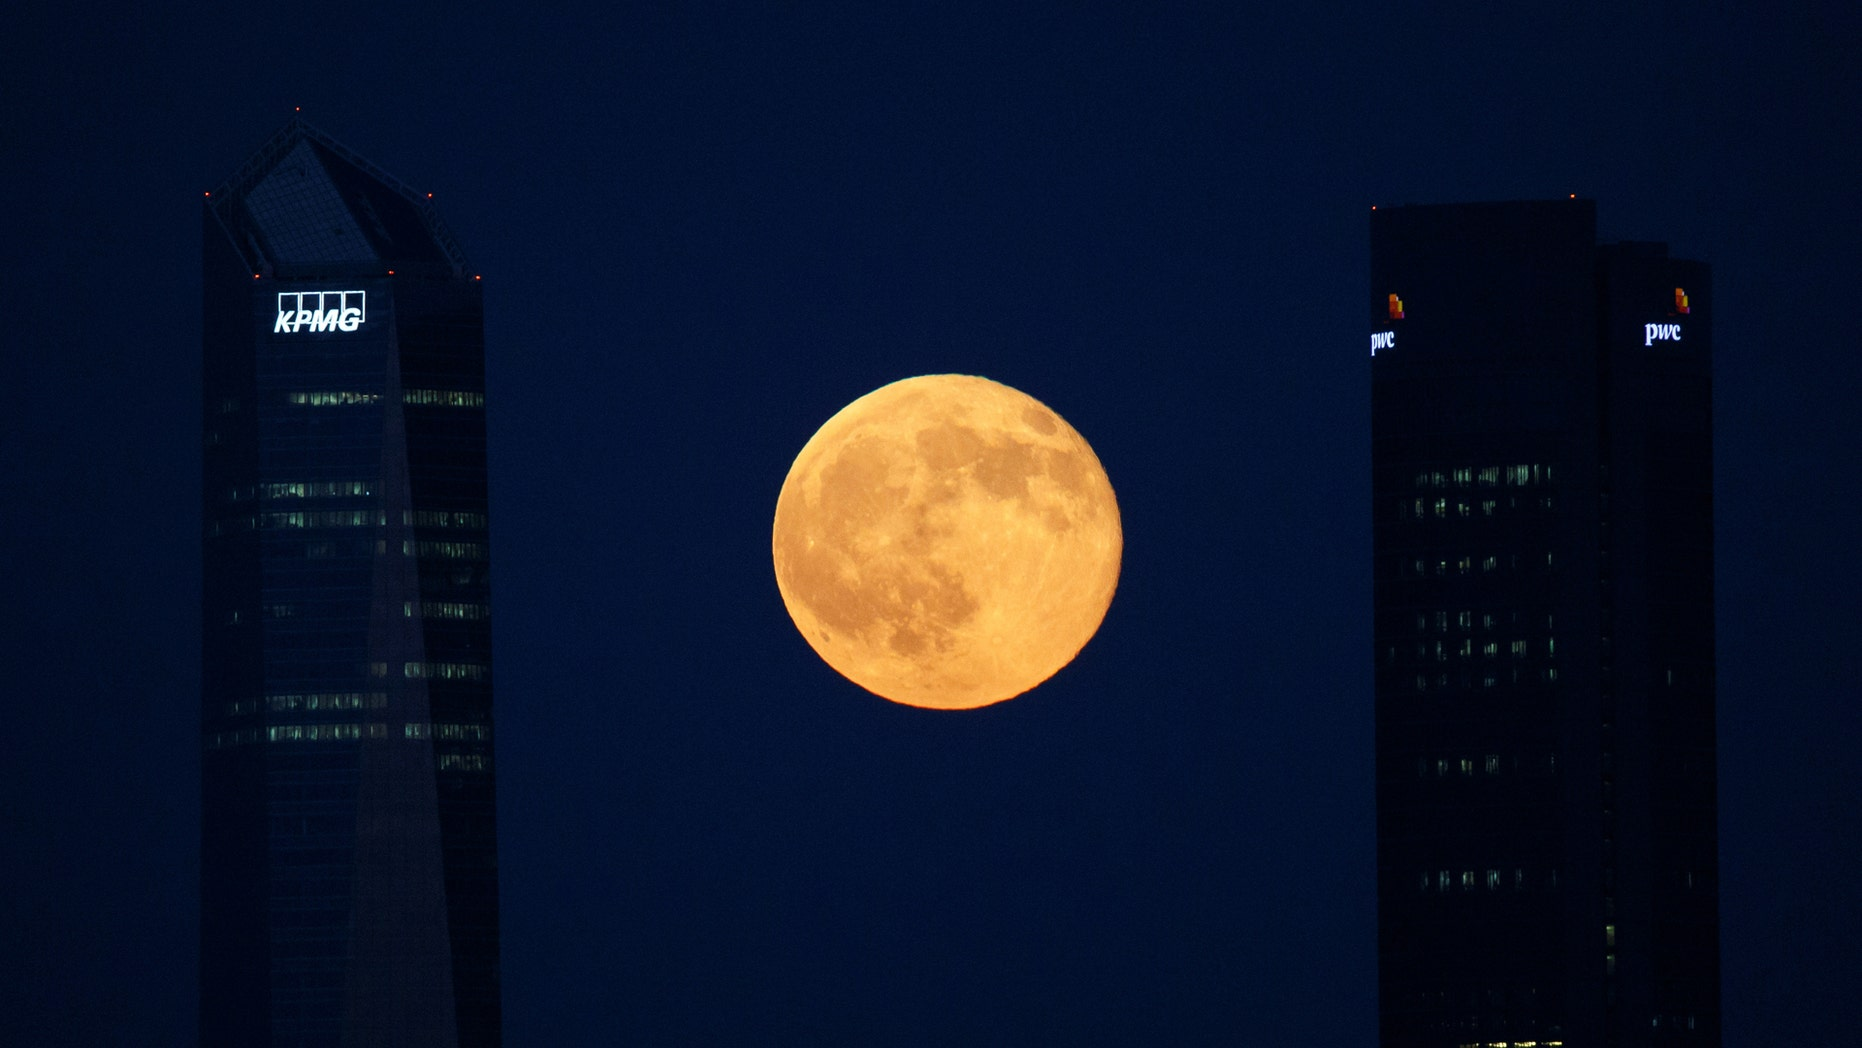 File photo: The full moon rises between buildings in the Four Towers business district in Madrid, Spain, July 9, 2017. (REUTERS/Paul Hanna)